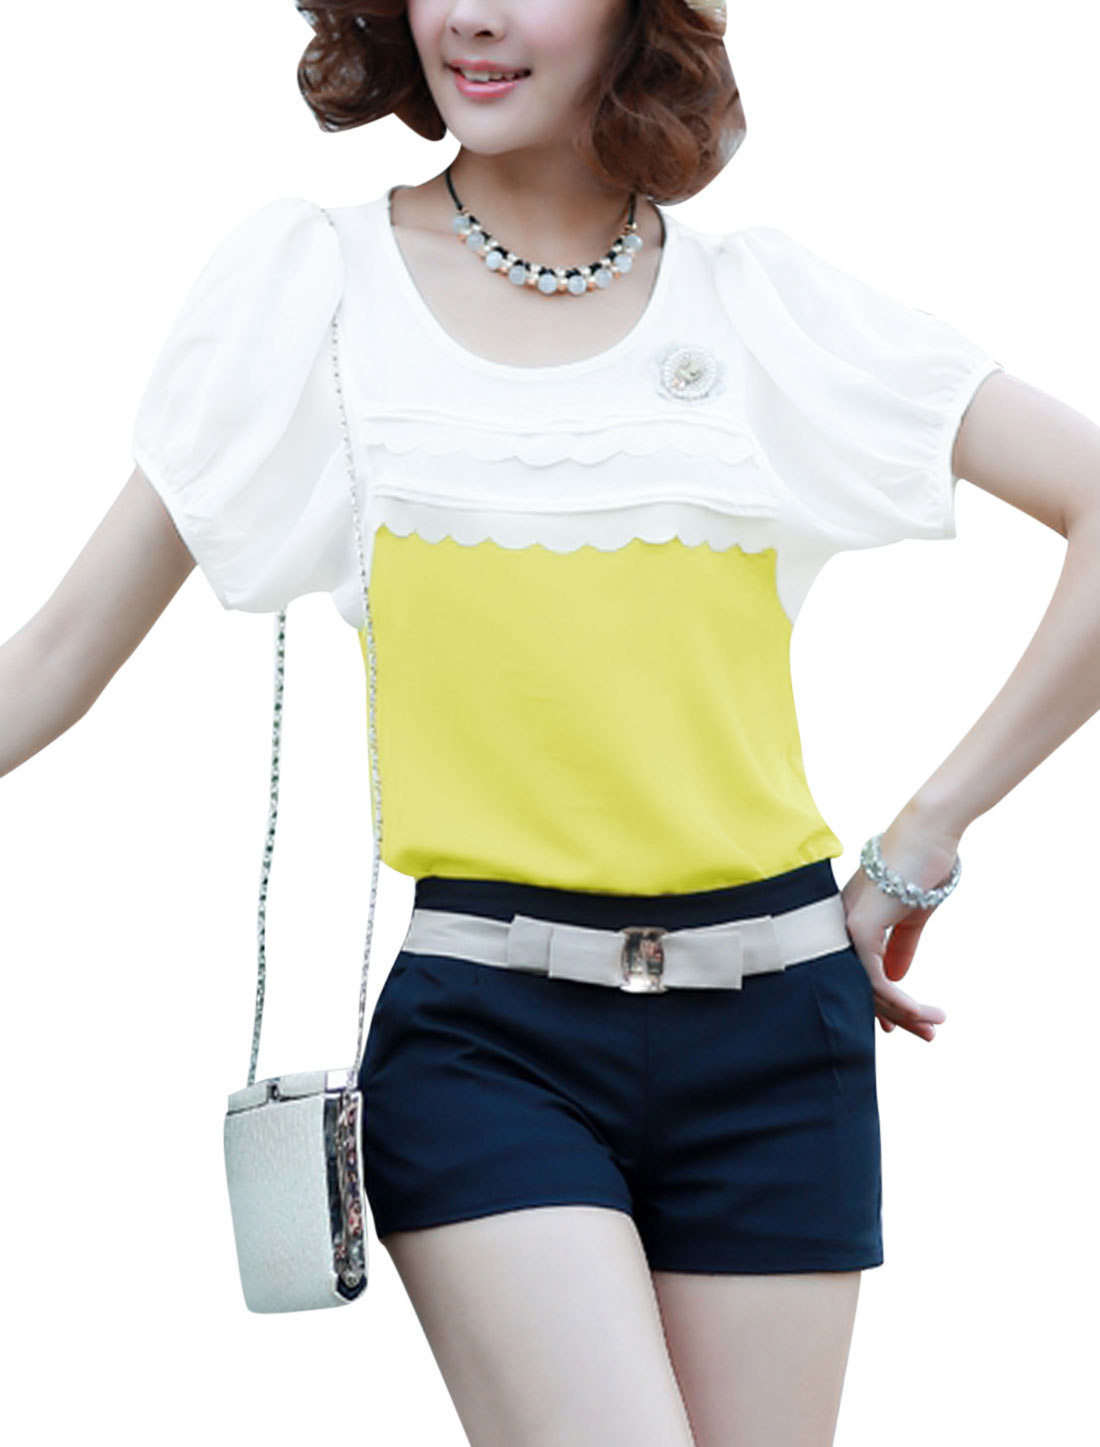 Lady Short Sleeve Scalloped Trim Front T-Shirt w Brooch White Yellow S